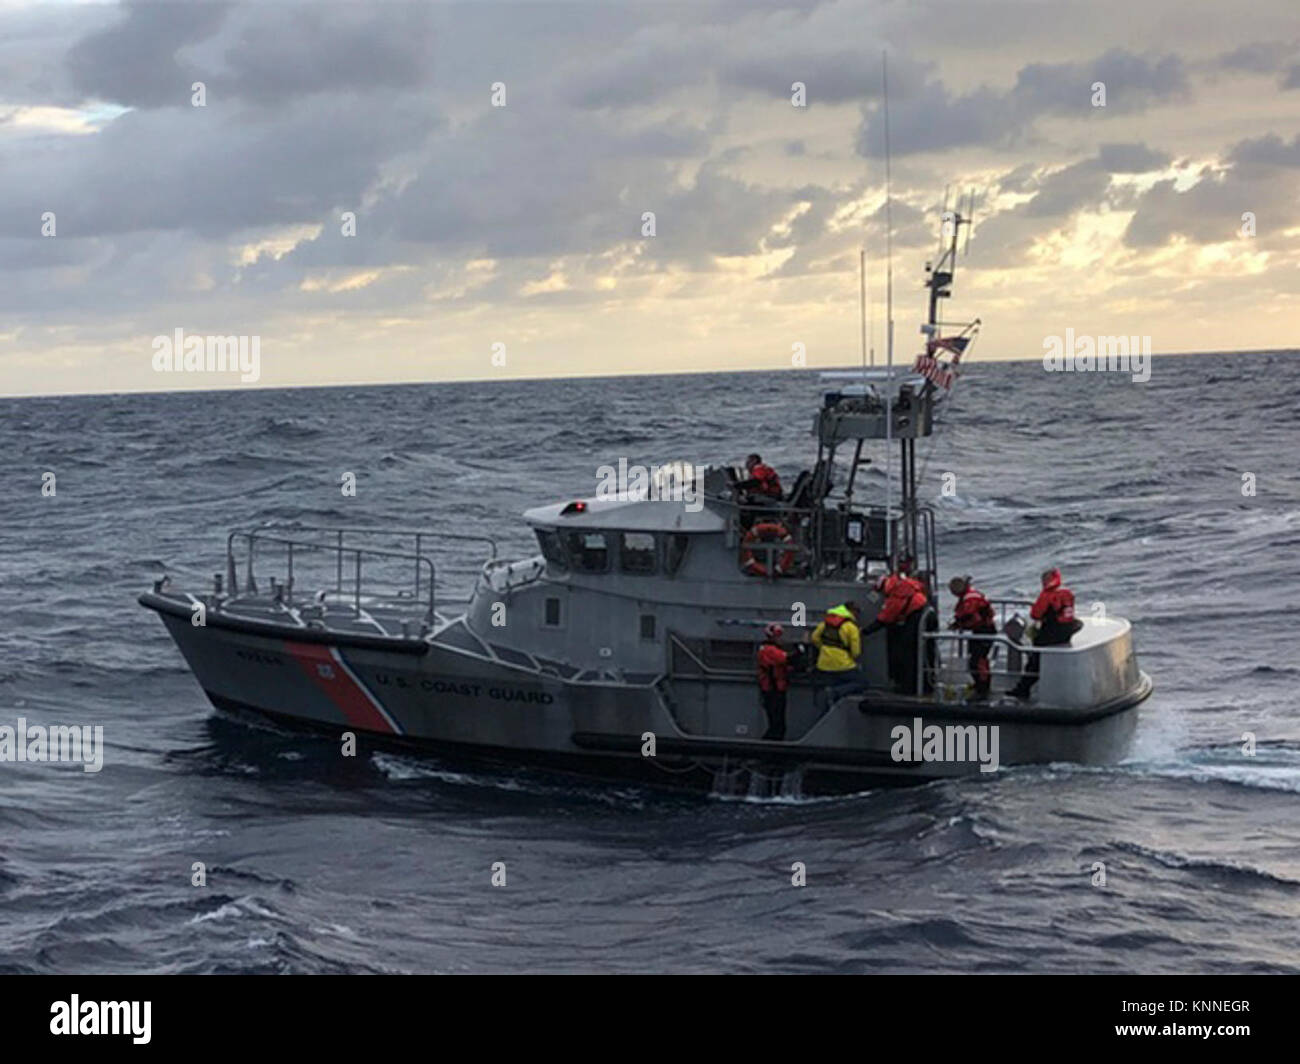 A Coast Guard 47-foot Motor Life Boat crew from Station